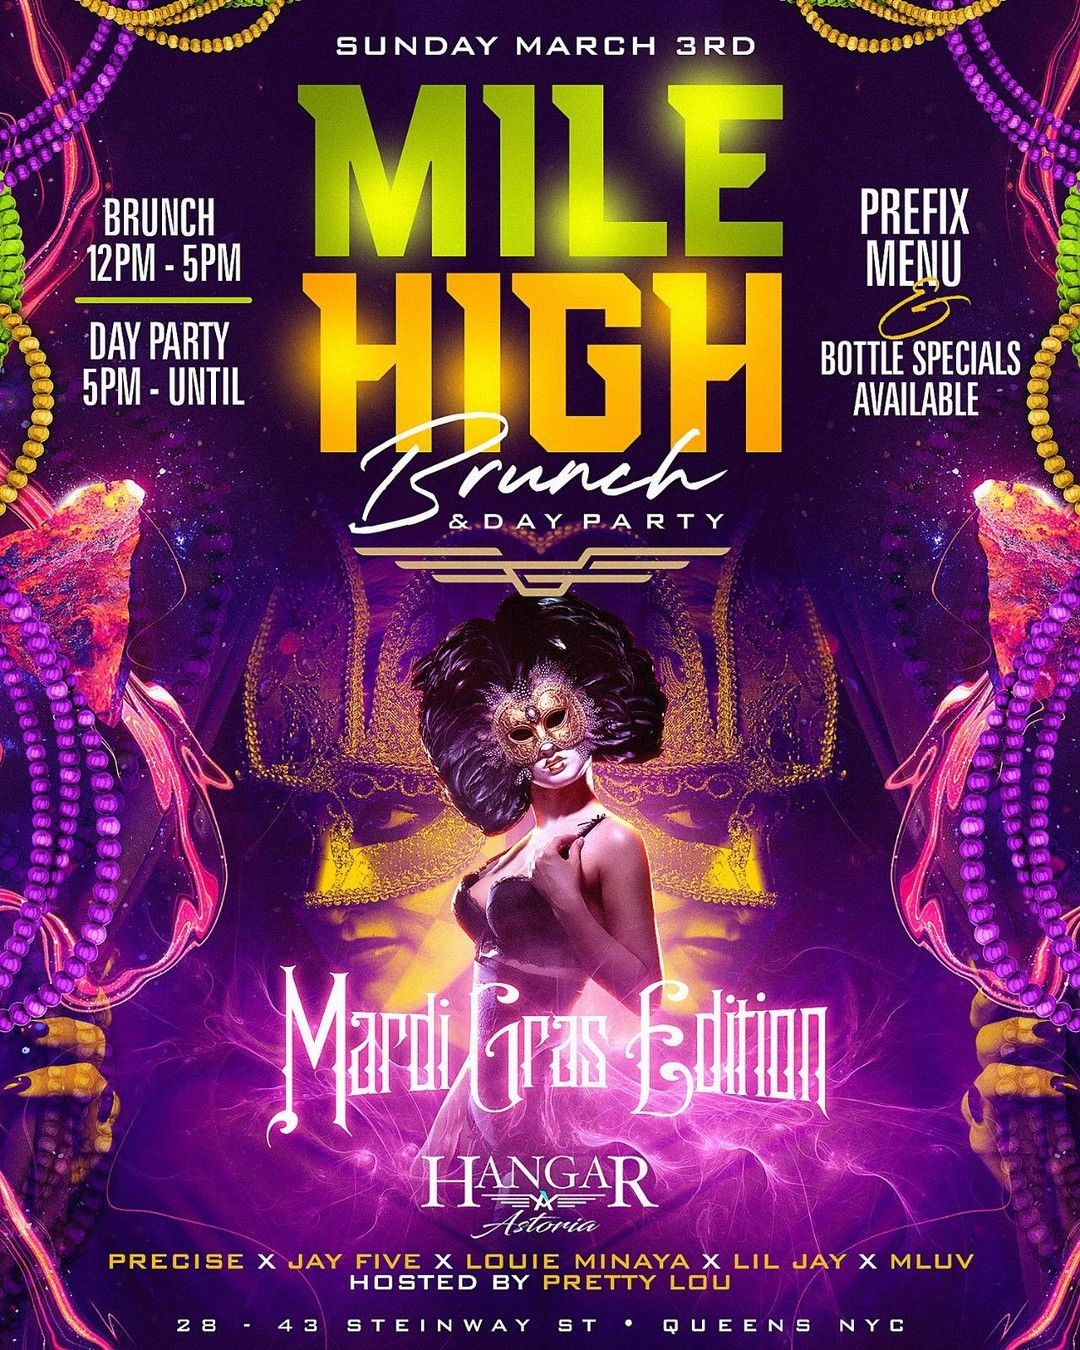 Sunday March 3rd Join Us For The Mardi Gras Edition Of Milehighbrunch Dayparty At Hangarastoria 28 43 Steinway Street Queens Nyc Brunch 12pm 5pm Day Par